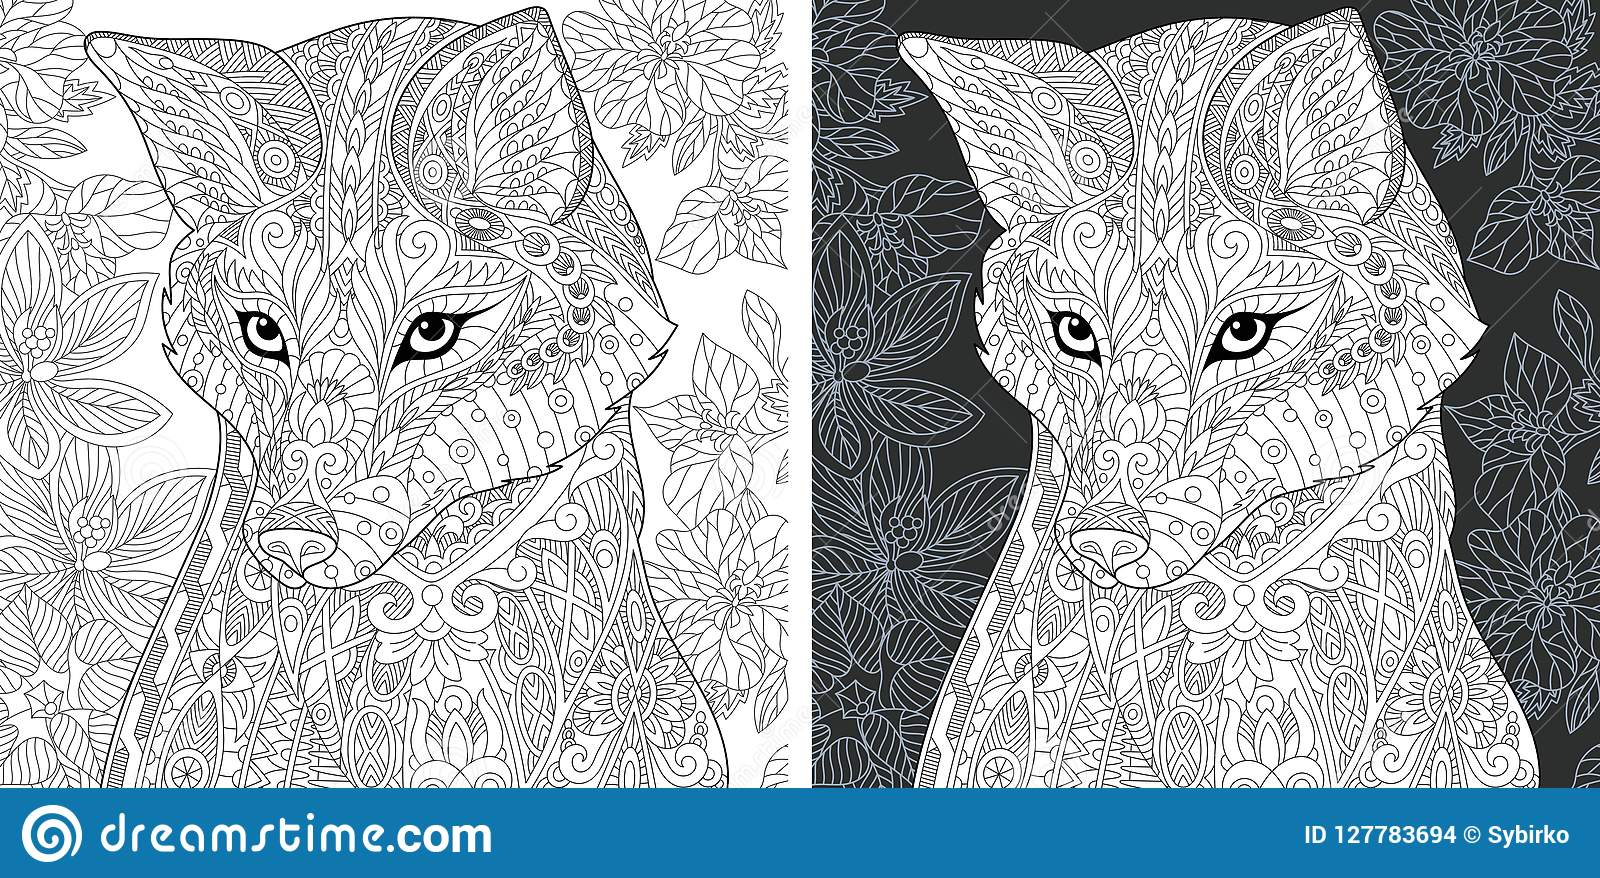 Coloring page with fox